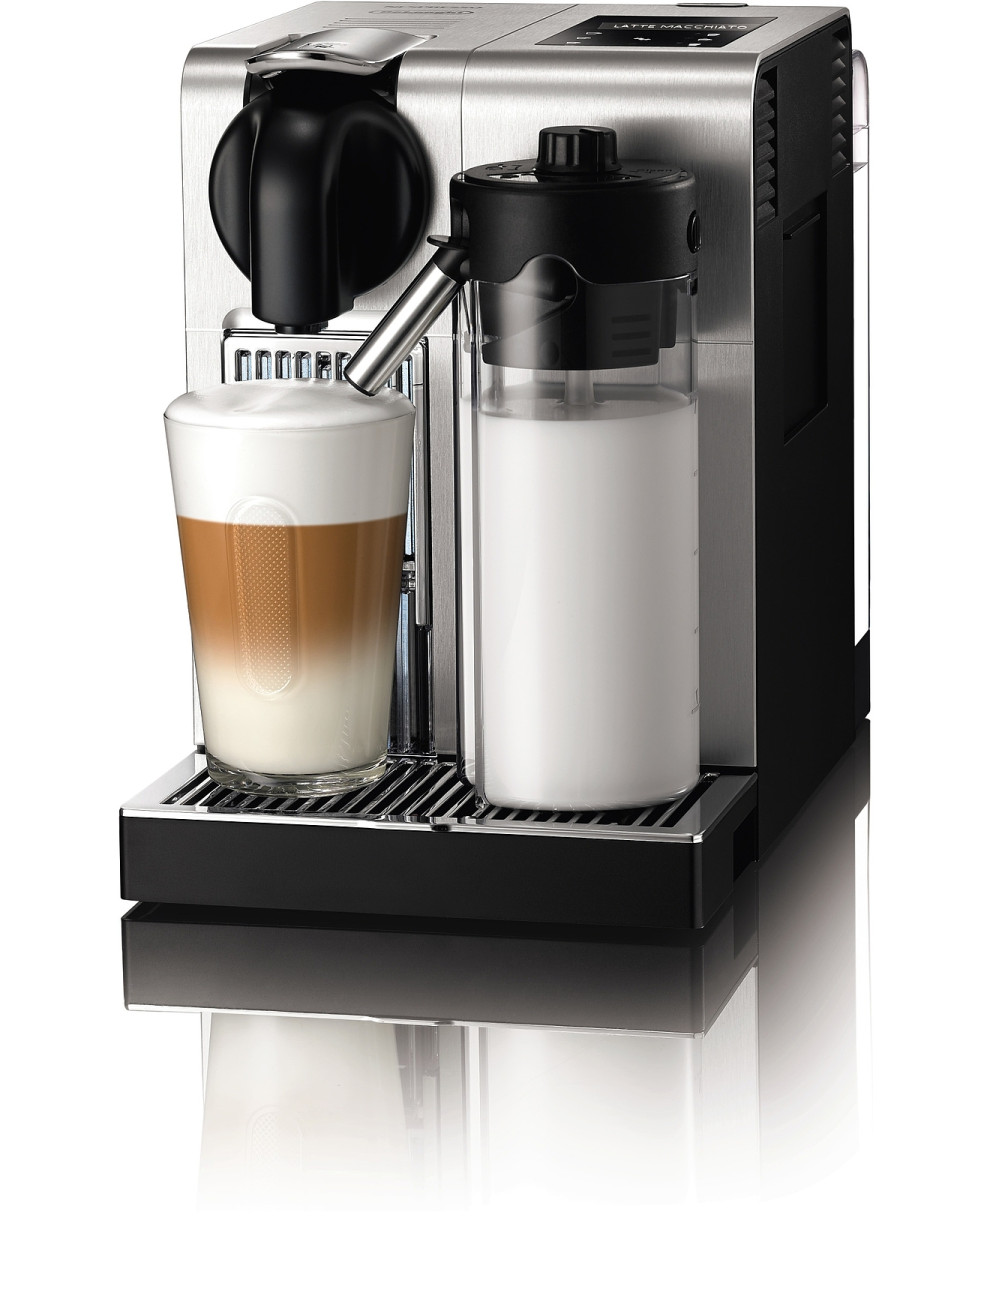 Coffee Maker With Water Line : Plumbed Coffee Maker: Simpler, Faster, and Tastier in Making A Glass of Coffee HomesFeed